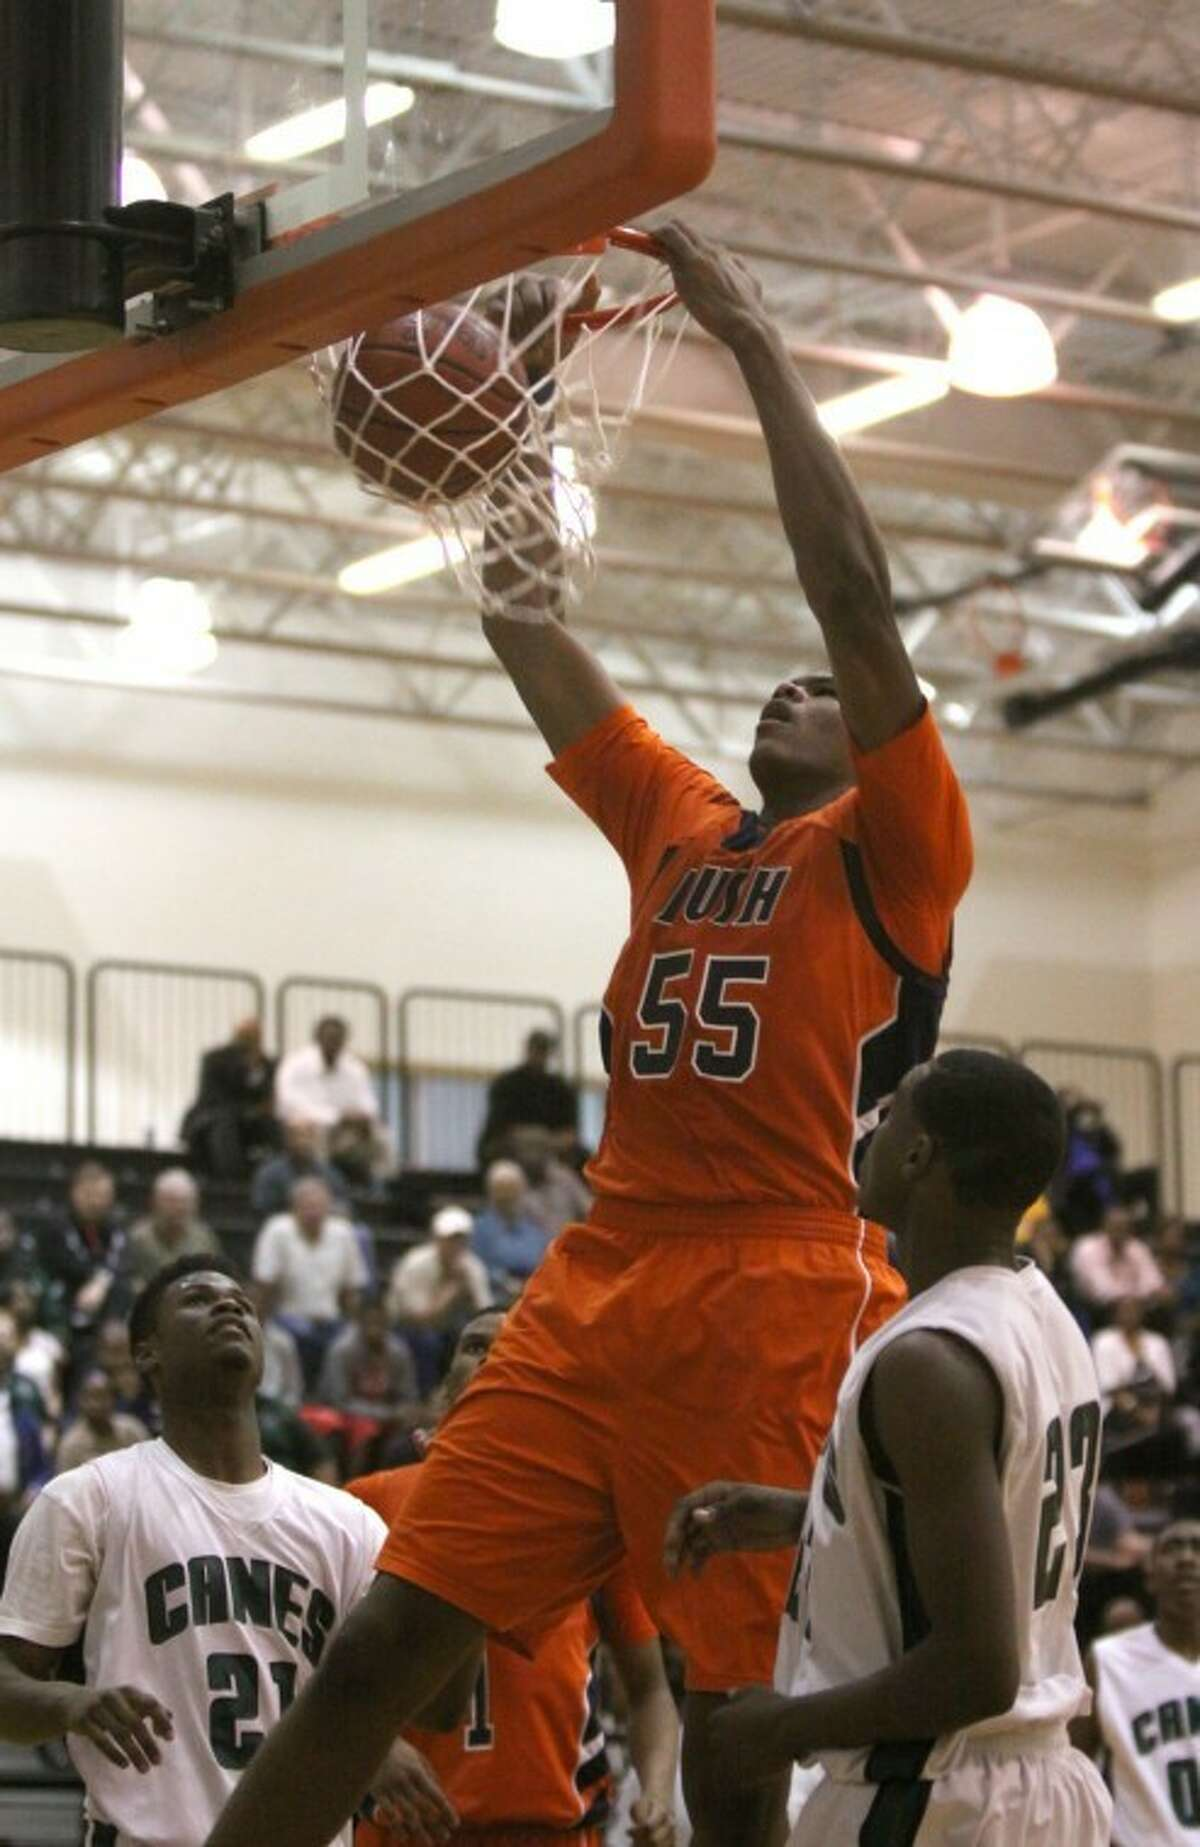 Bush's Cameron Ridleysigned a national letter of intent with the Texas Longhorns on Wednesday.(Photo by Alan Warren)